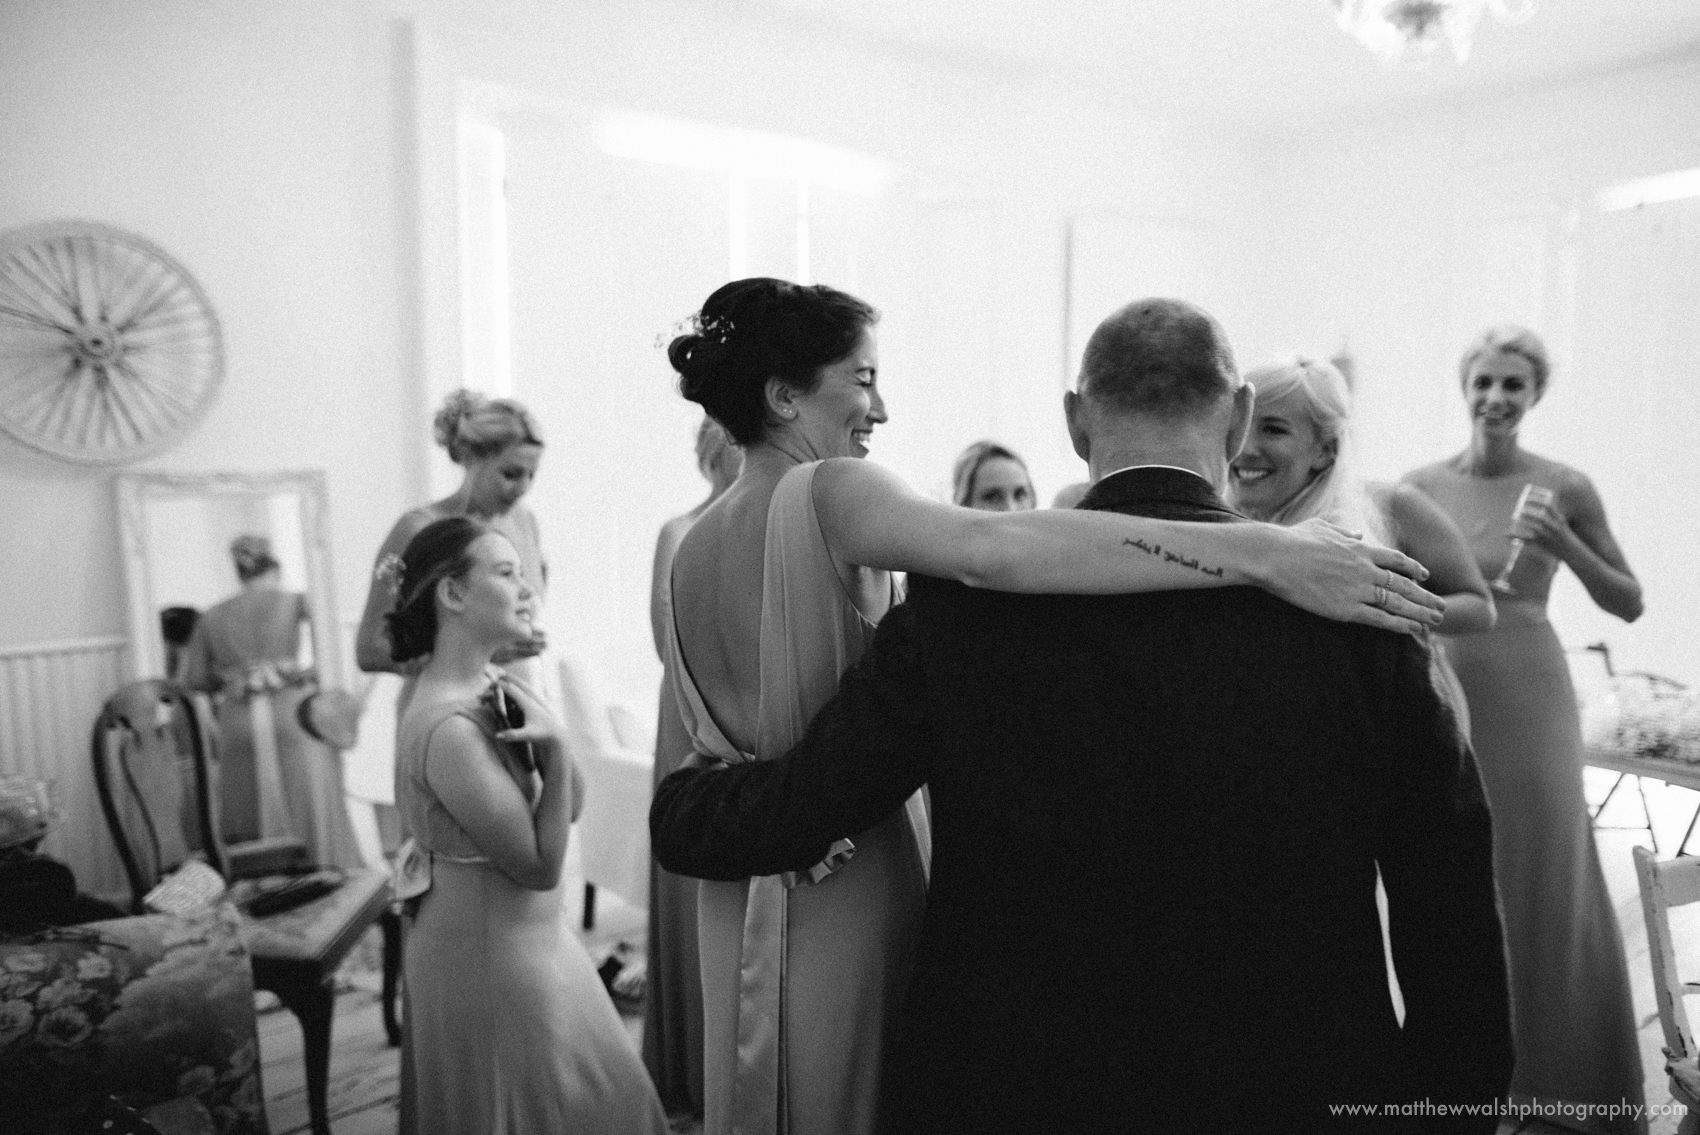 Father of the bride is welcomed into the room by the bride and bridesmaids